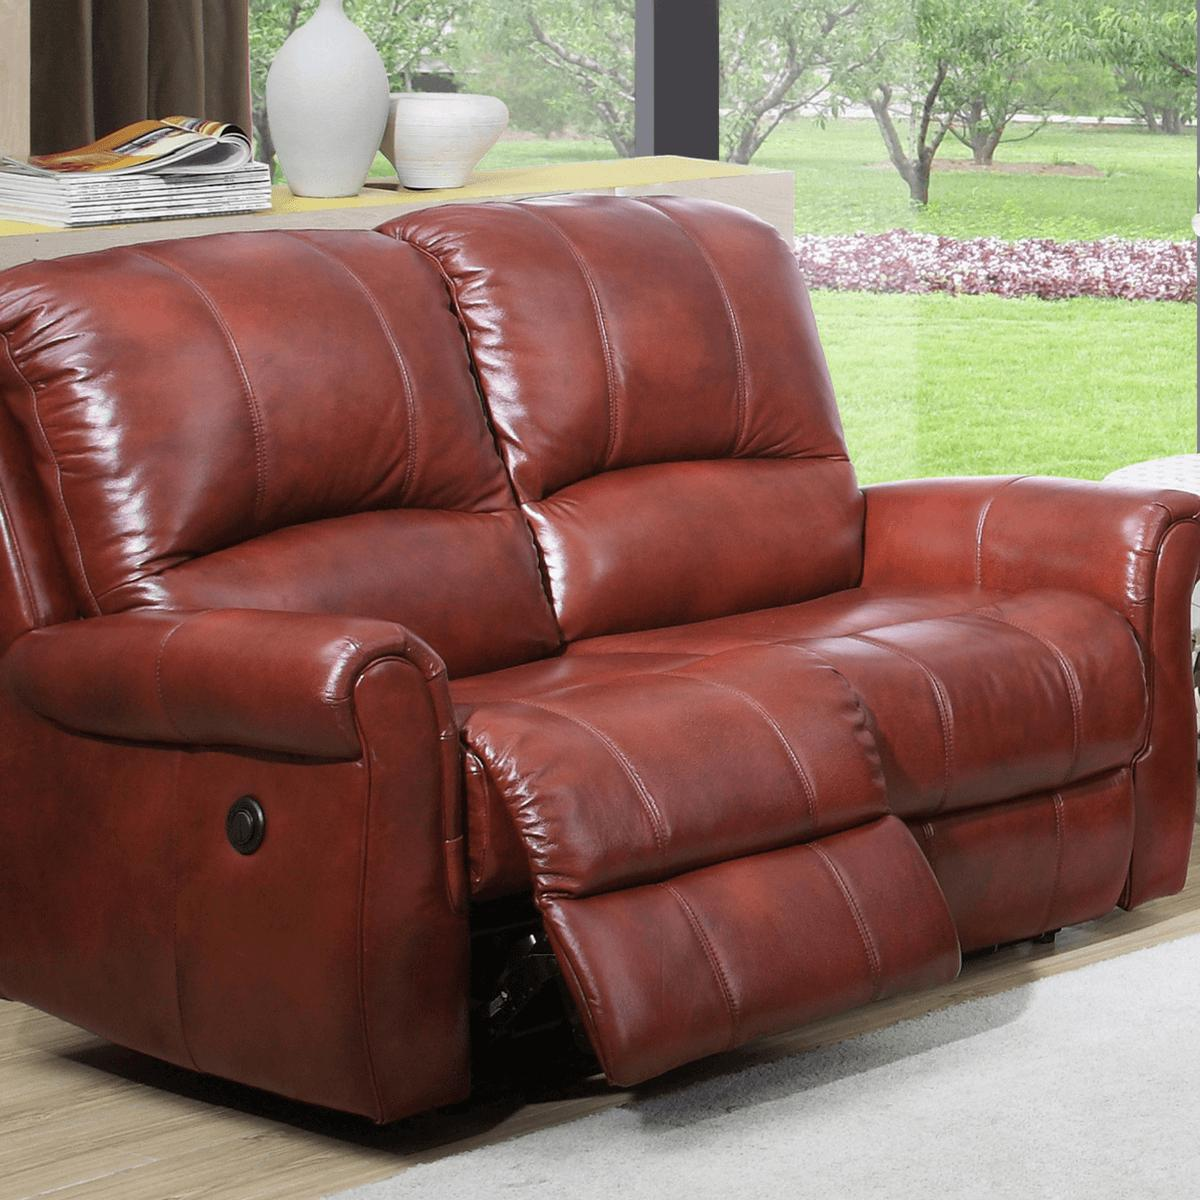 Aston Two-Seater Leather Recliner